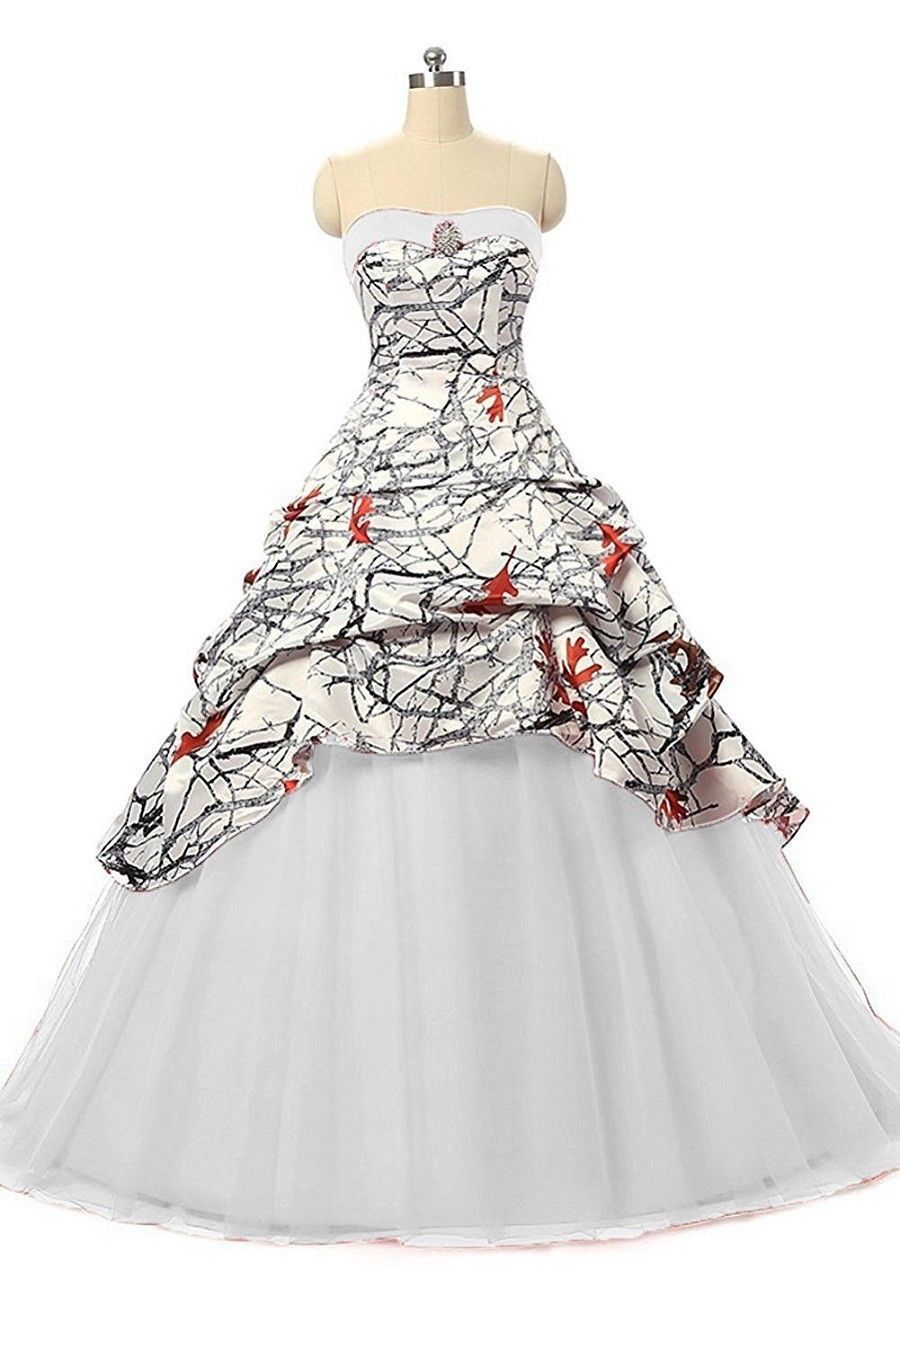 f687d4d4b4333 Custom White Camo Wedding Dresses Black Red Ball Gown Camouflage